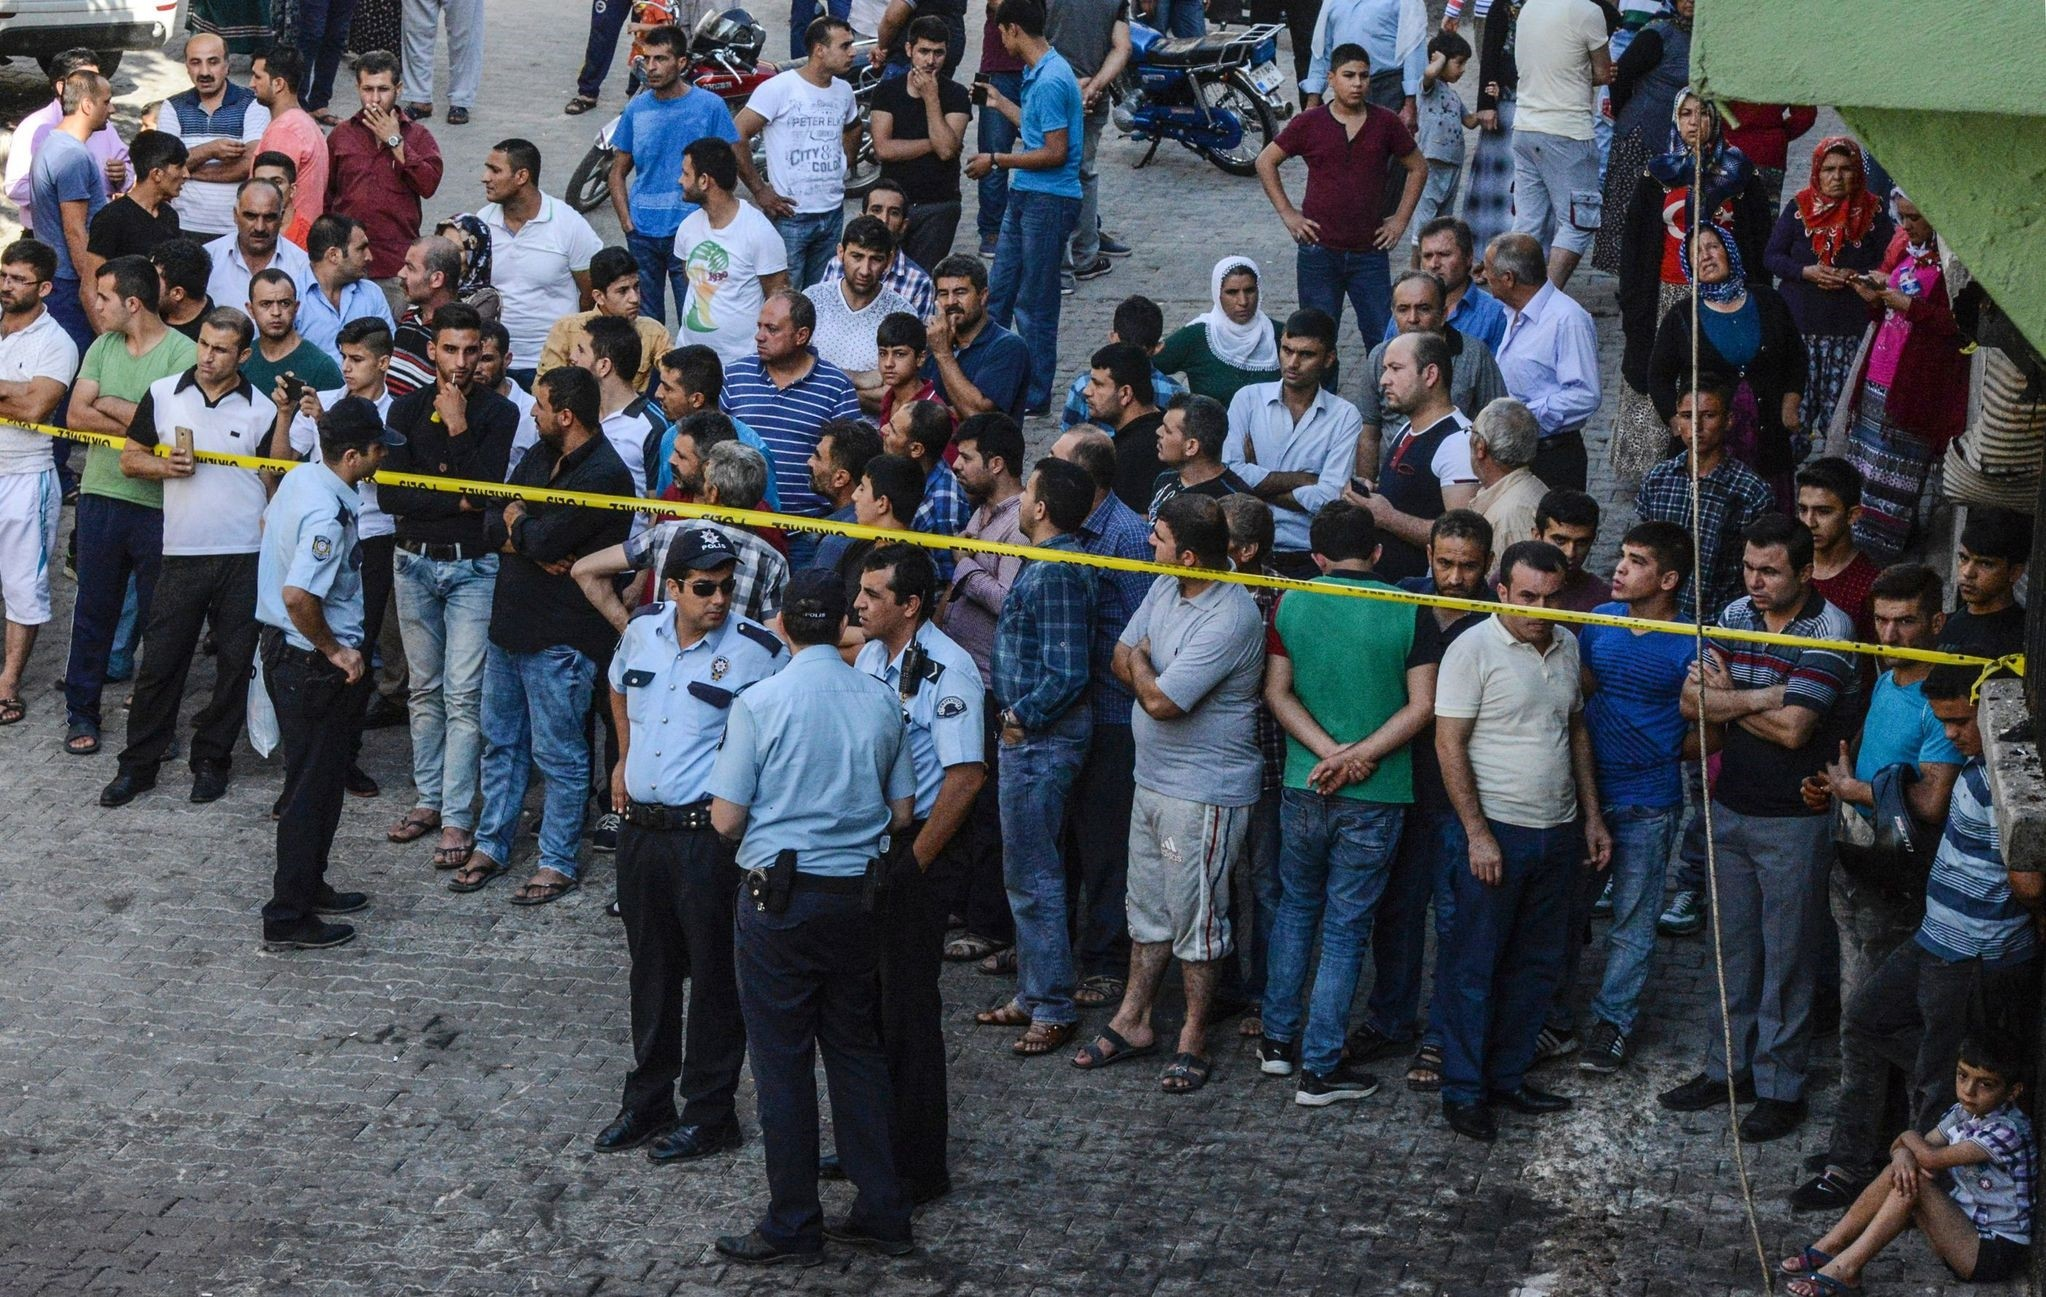 People watch the explosion scene behind a police cordon in Gaziantep in southeastern Turkey near the Syrian border on August 21, 2016. (AFP Photo)